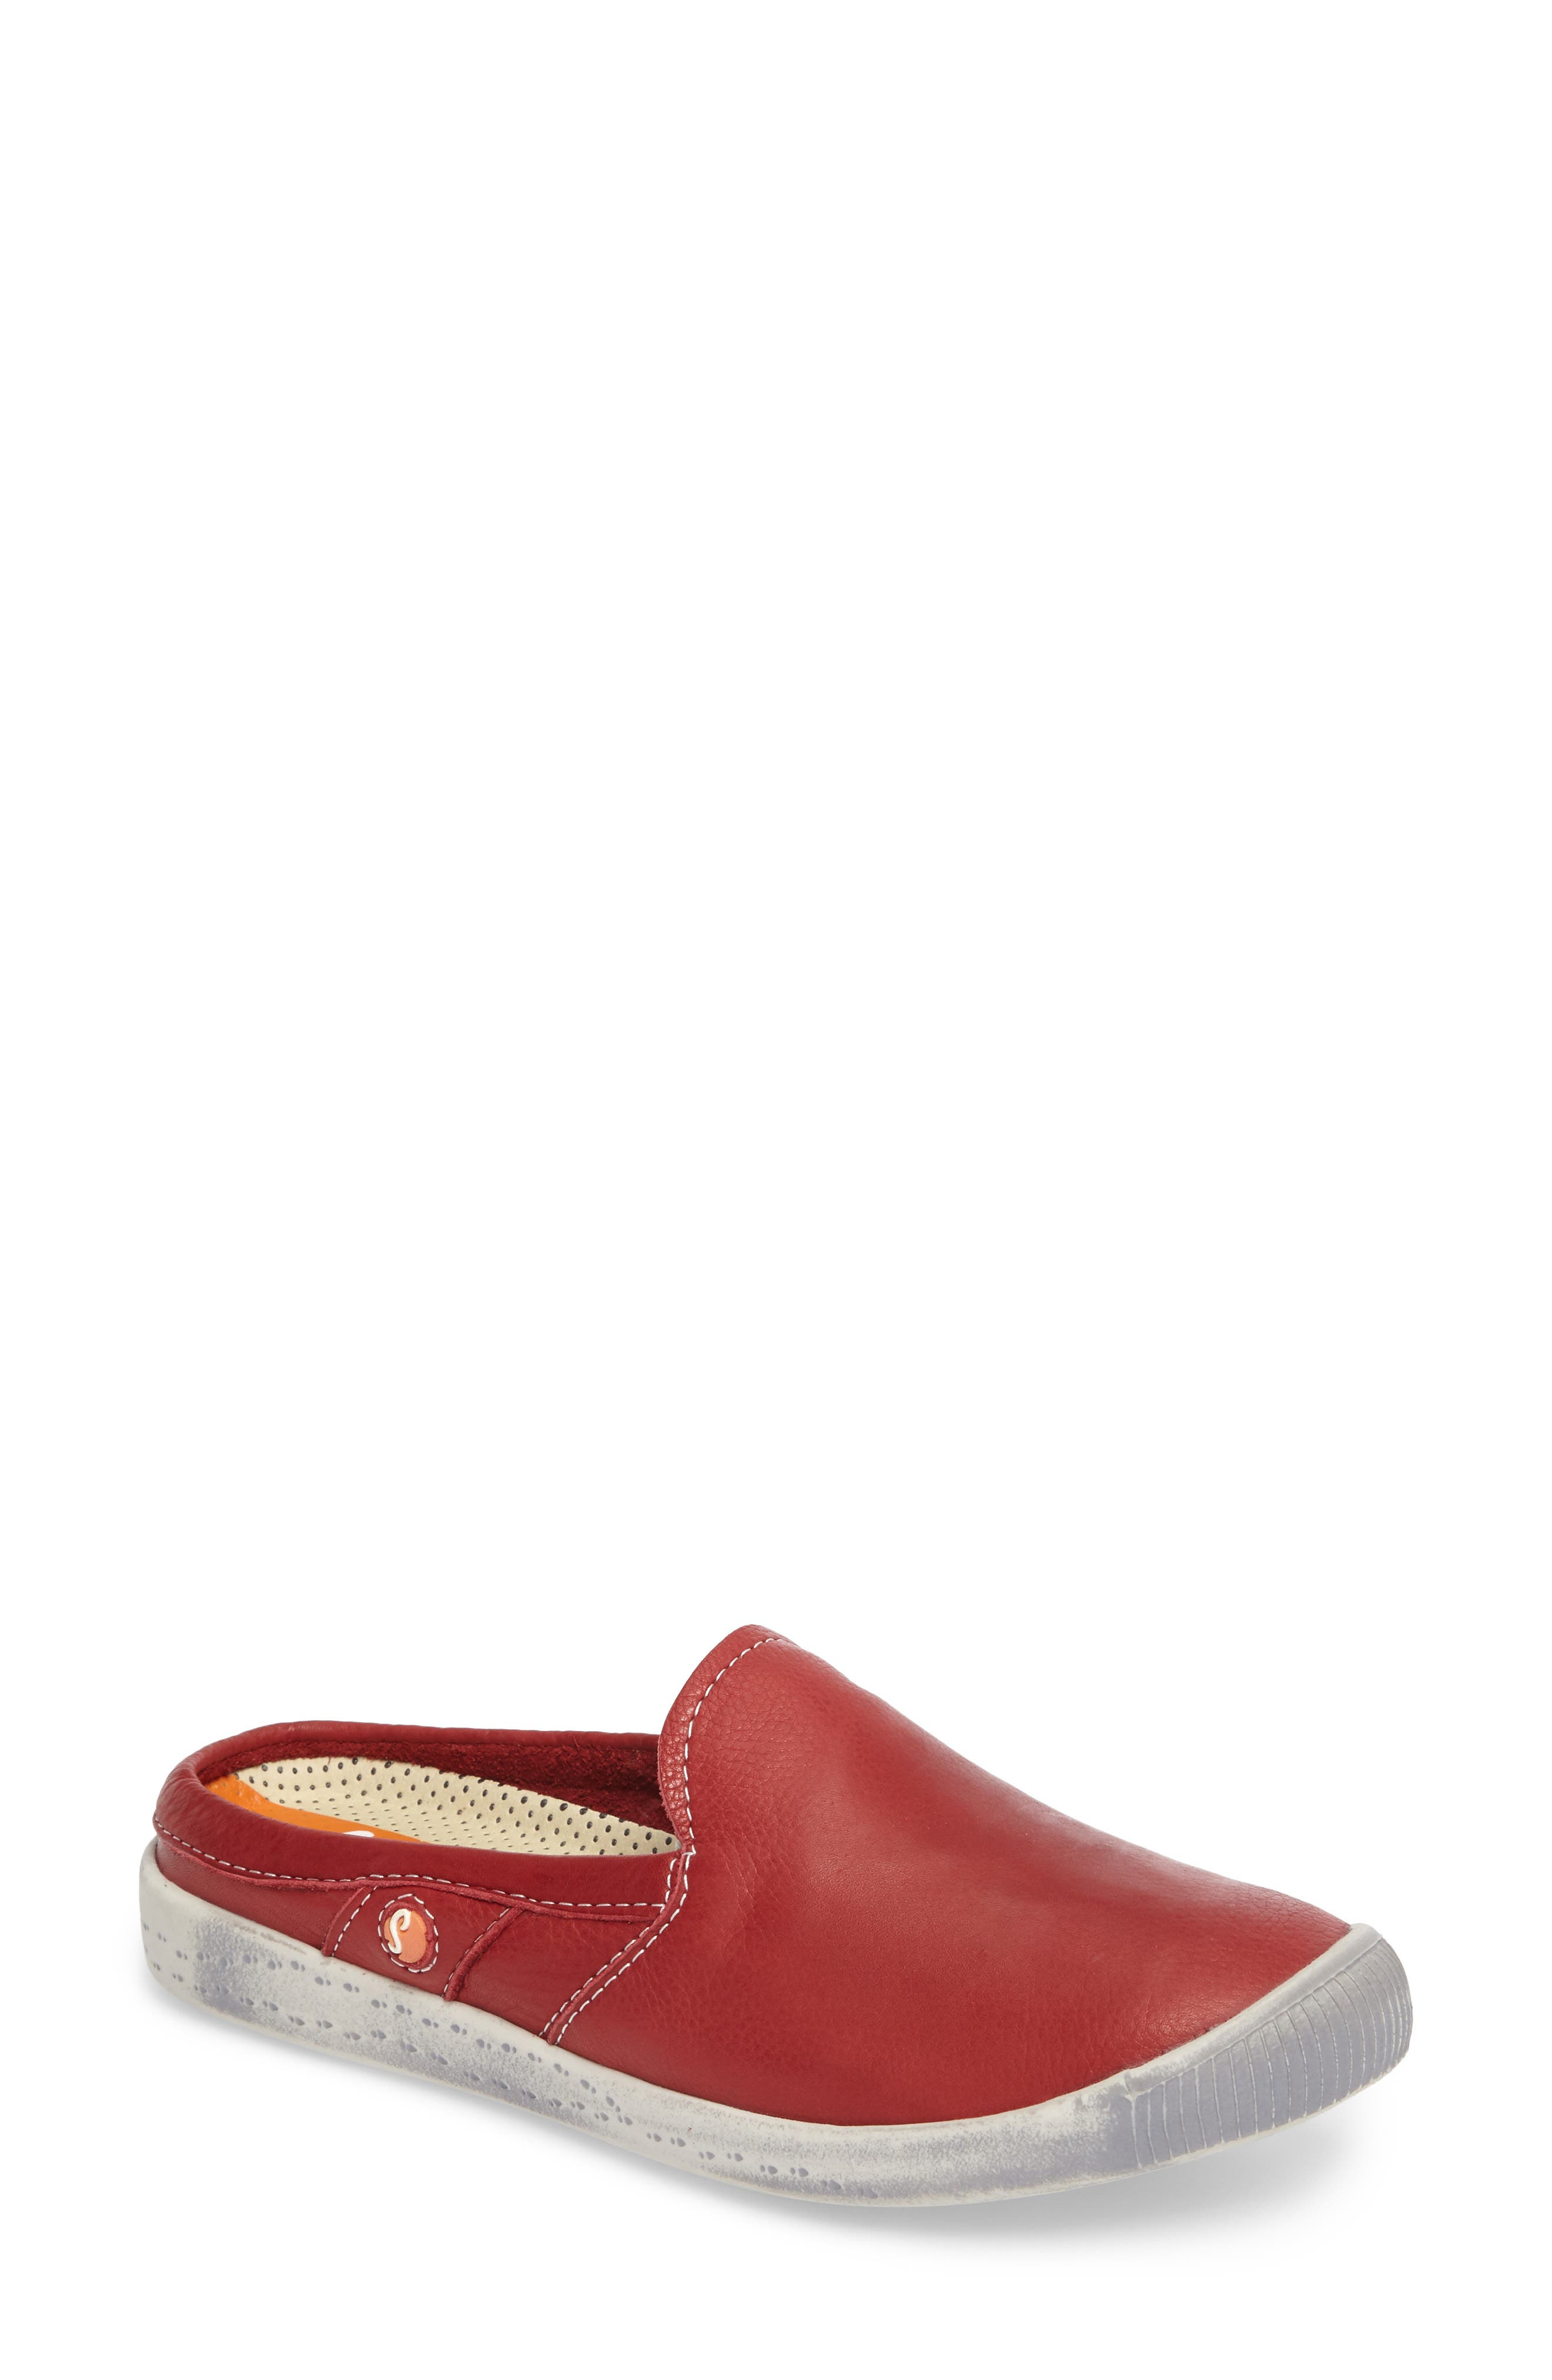 Imo Sneaker Mule,                             Main thumbnail 1, color,                             005 Red Leather